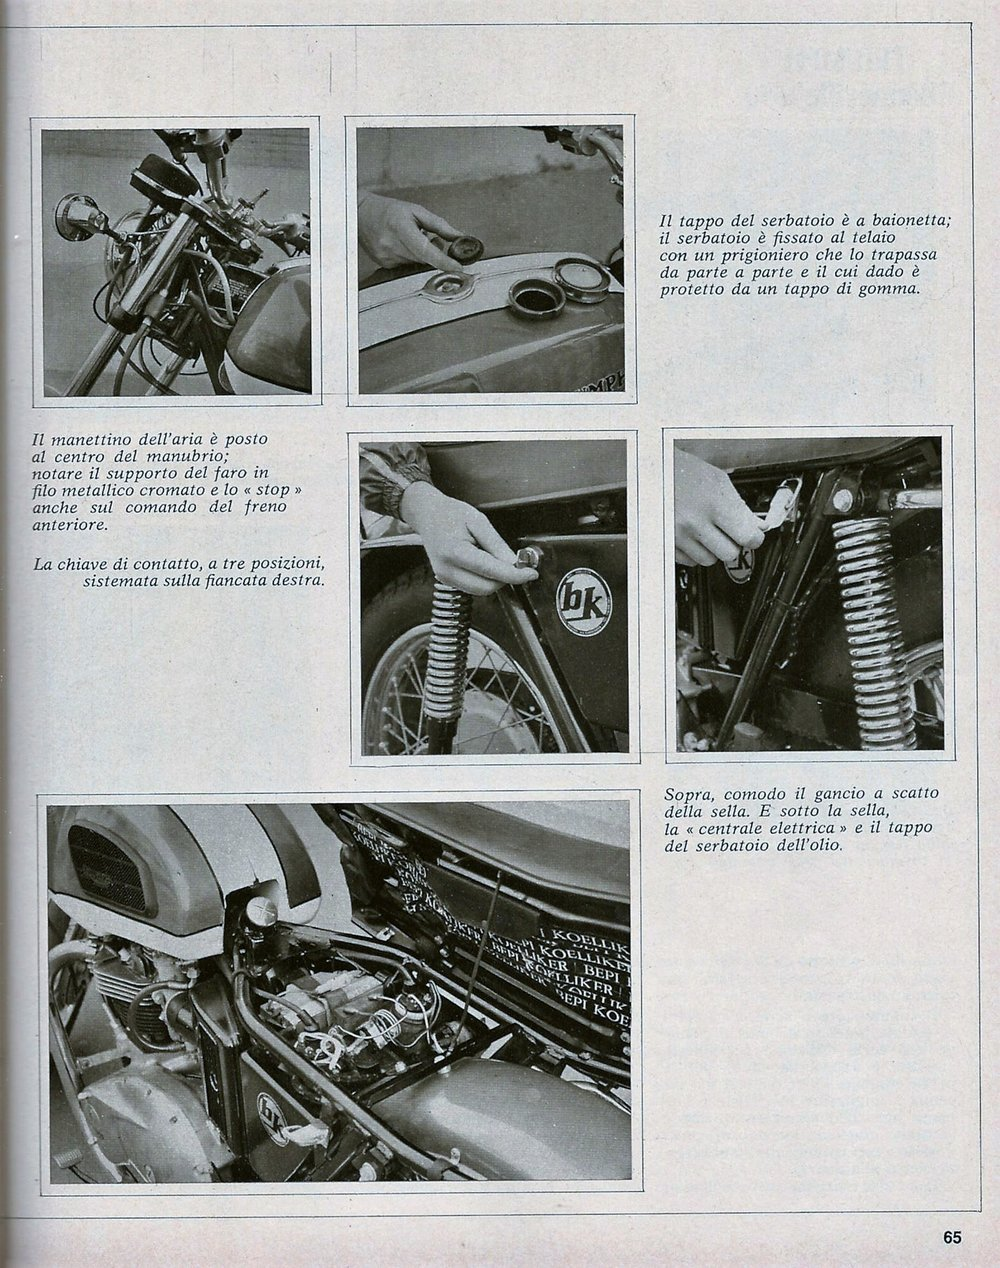 1972 Triumph Bonneville road test.8.jpg